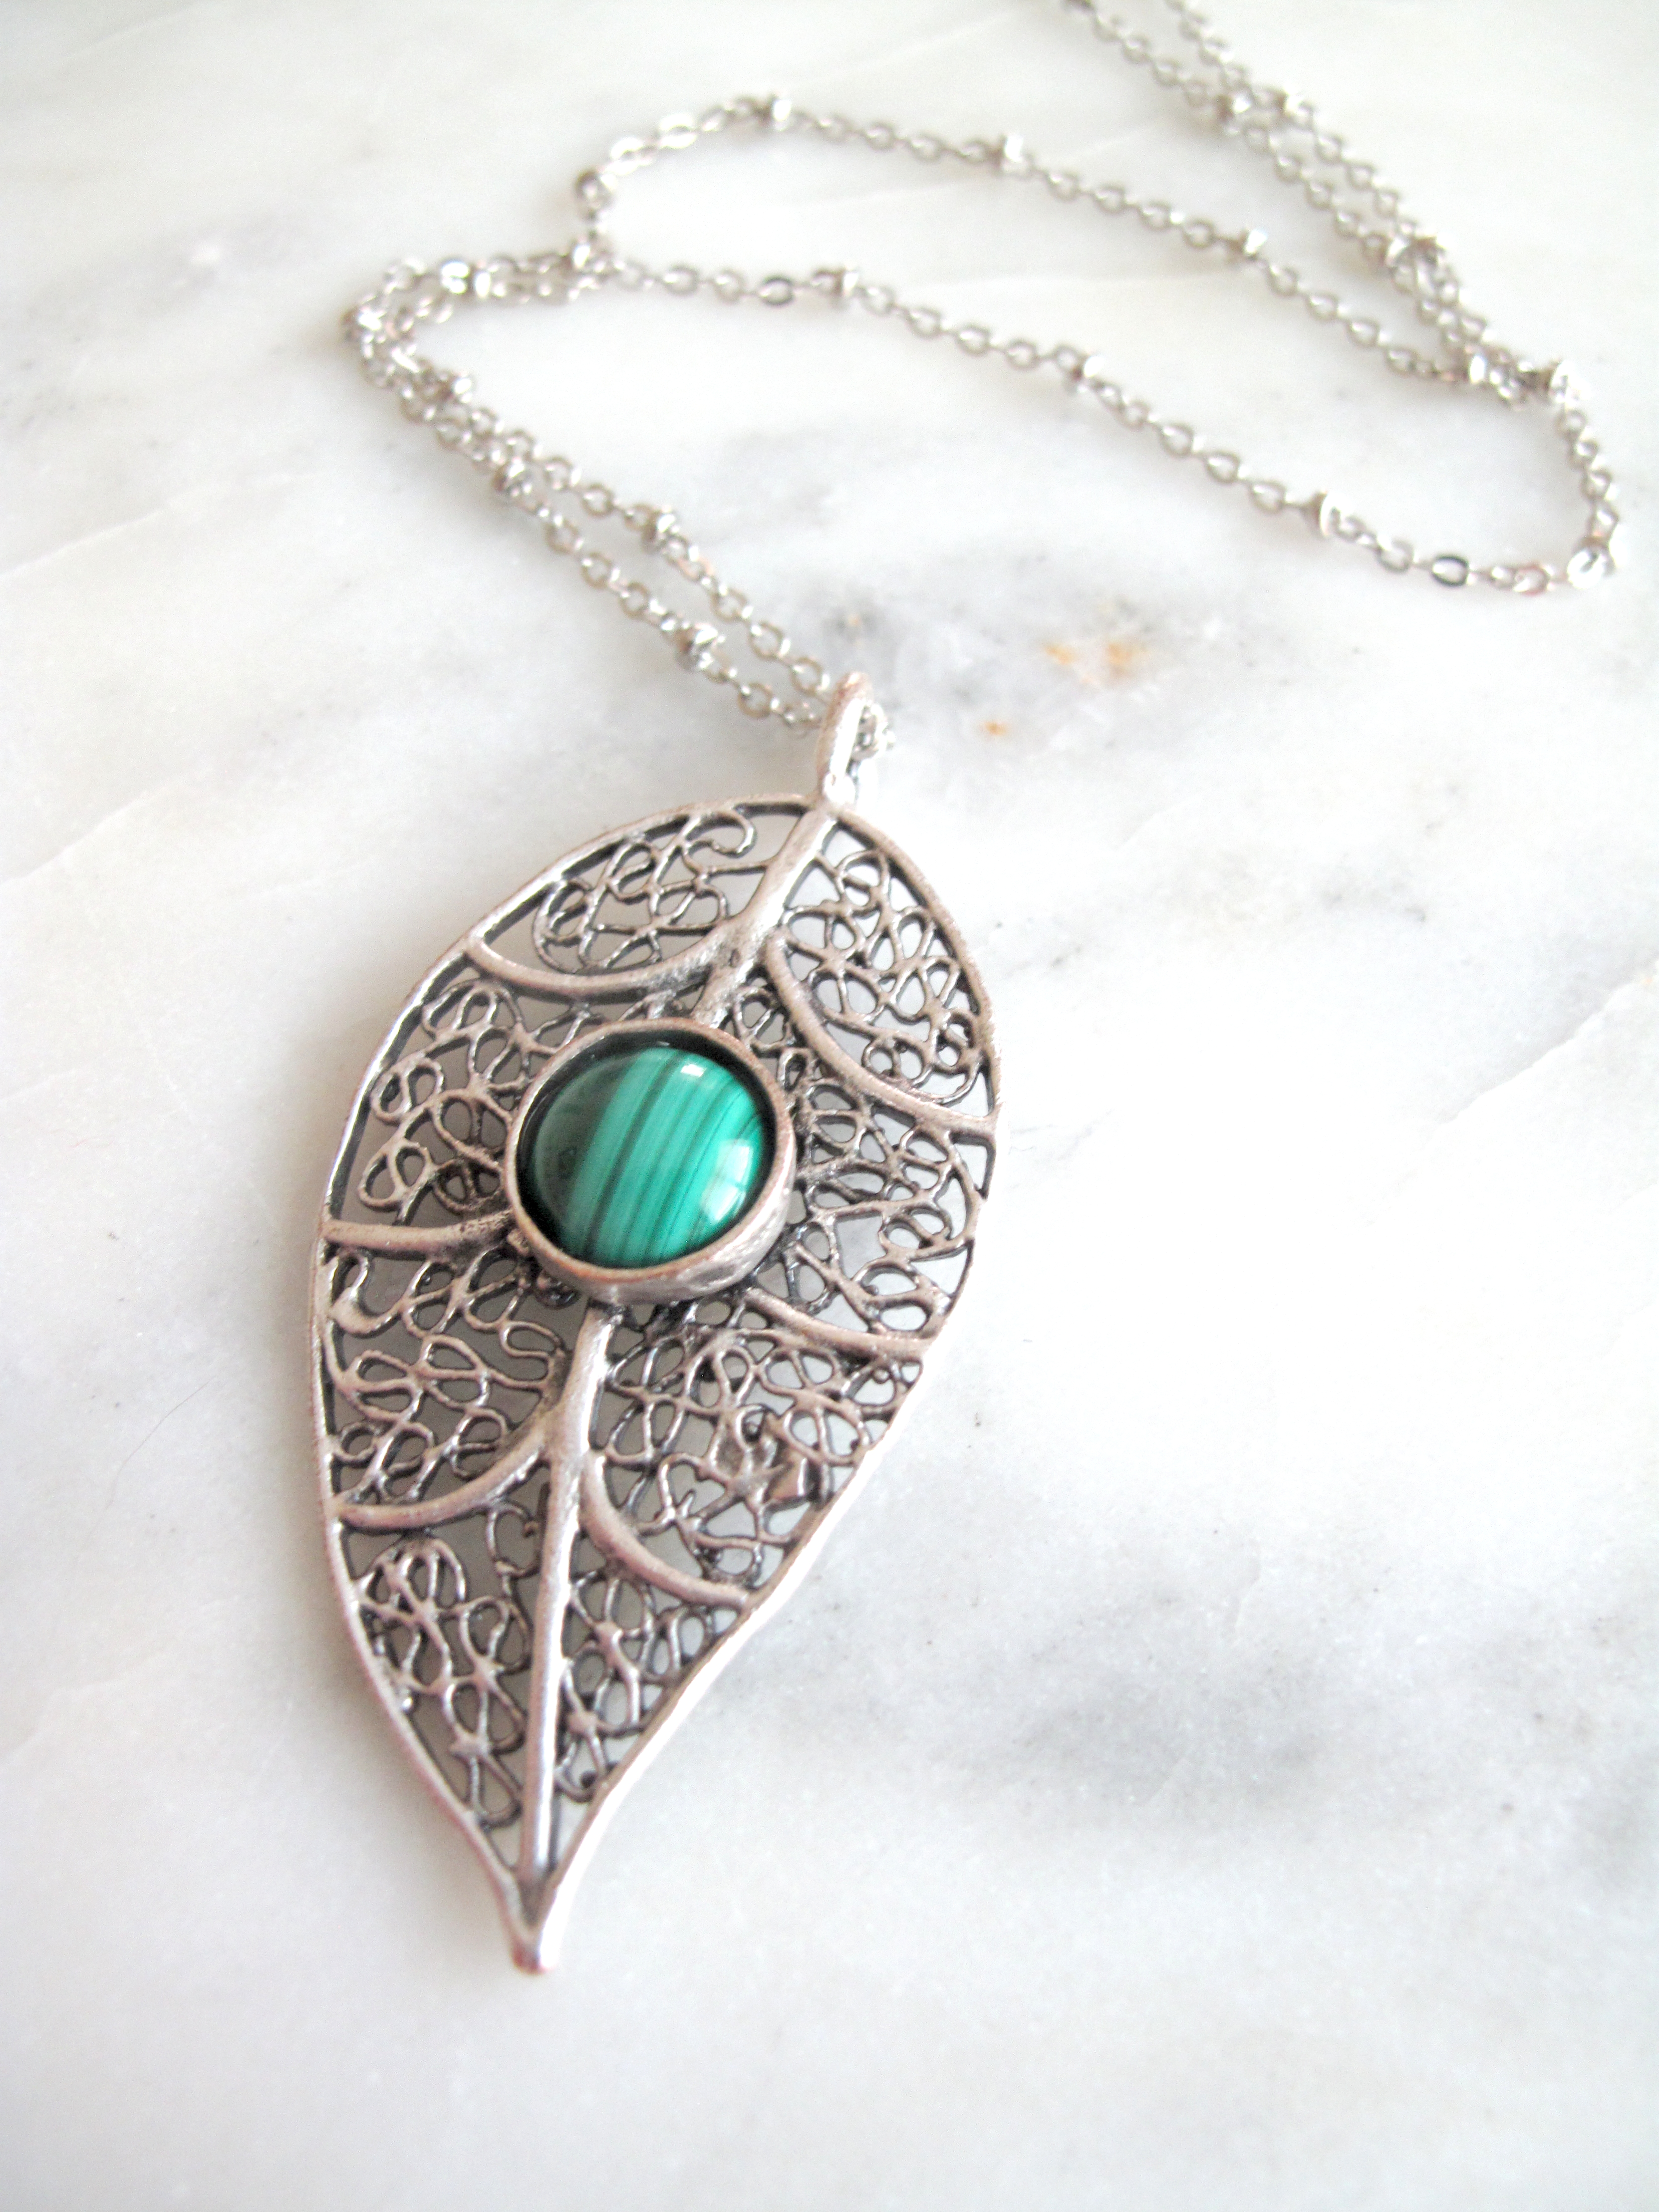 https://www.aprilalayne.com/shop/shopping/yugen-detailed-leaf-with-turquoise-drop-necklace/